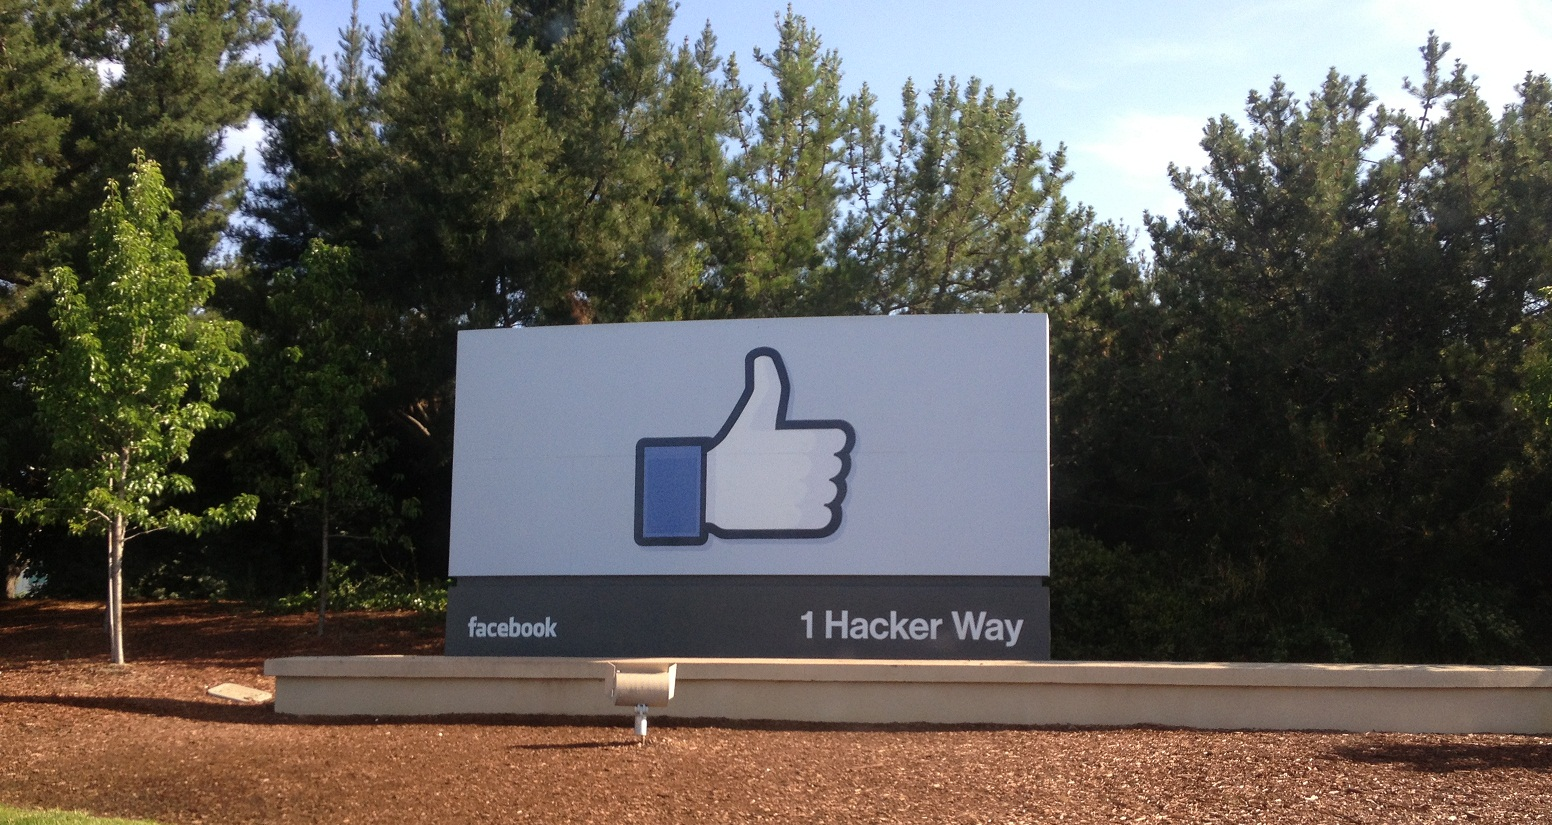 hacker way facebook